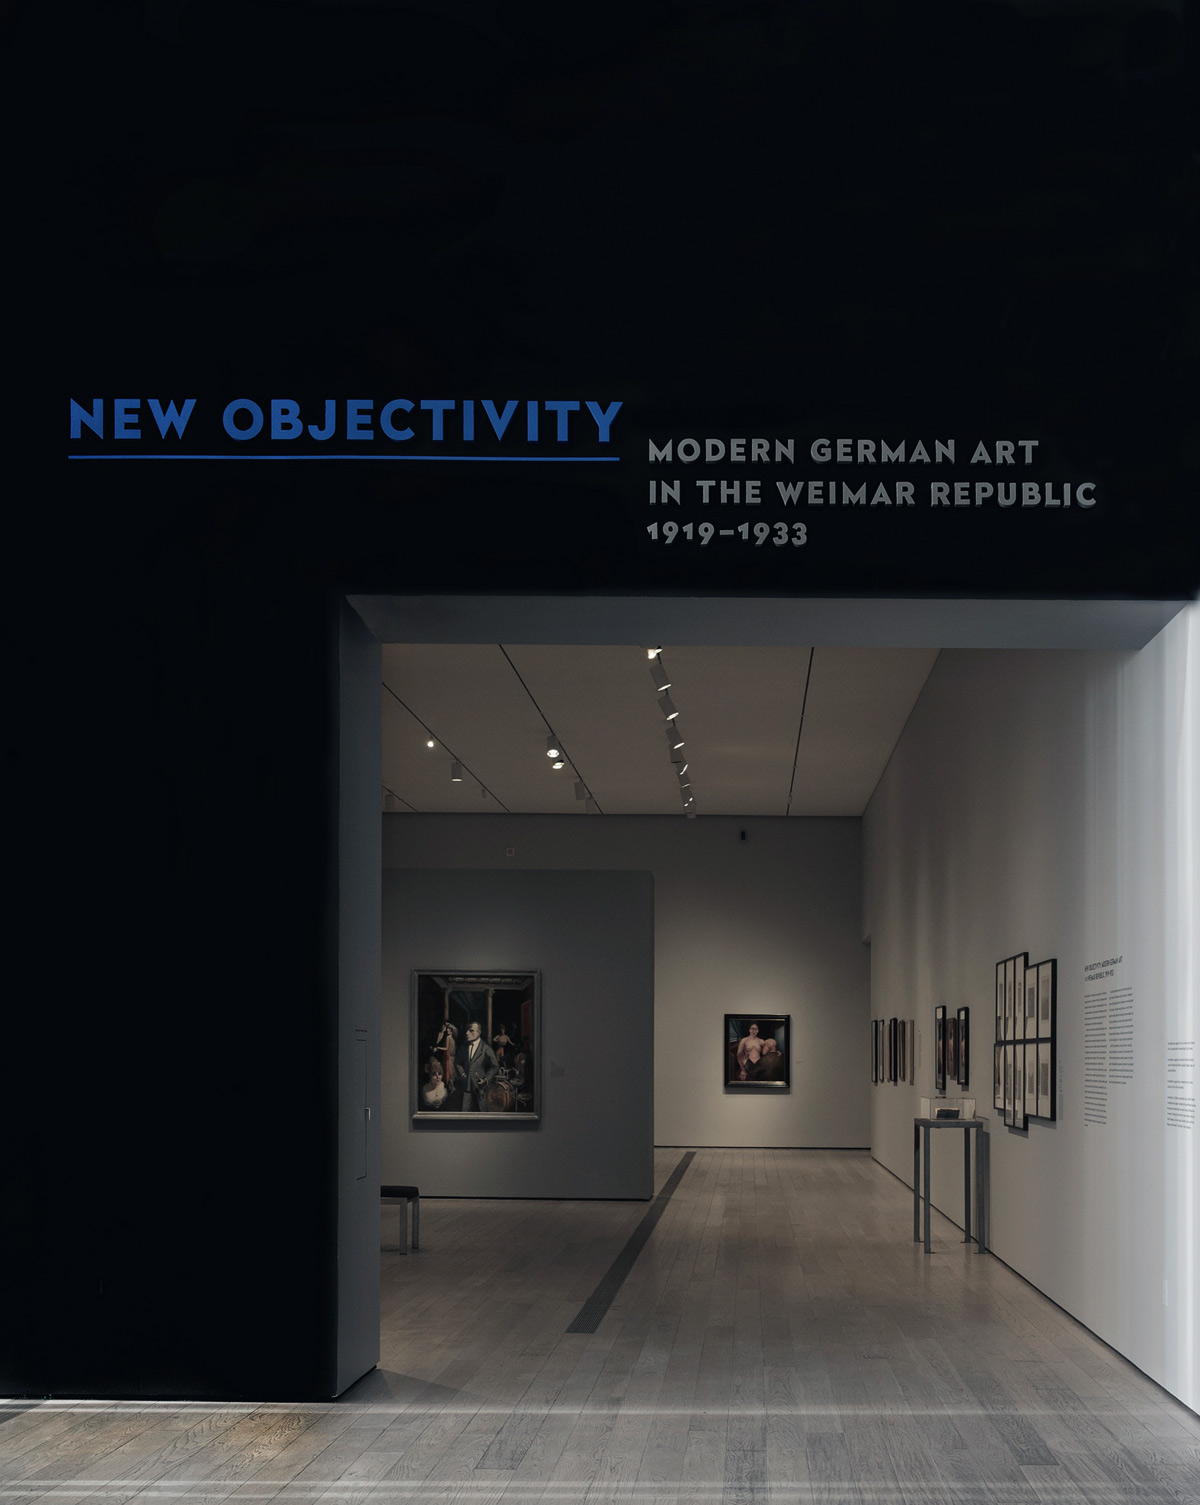 Installation View Of The Exhibition U0027New Objectivity: Modern German Art In  The Weimar Republic